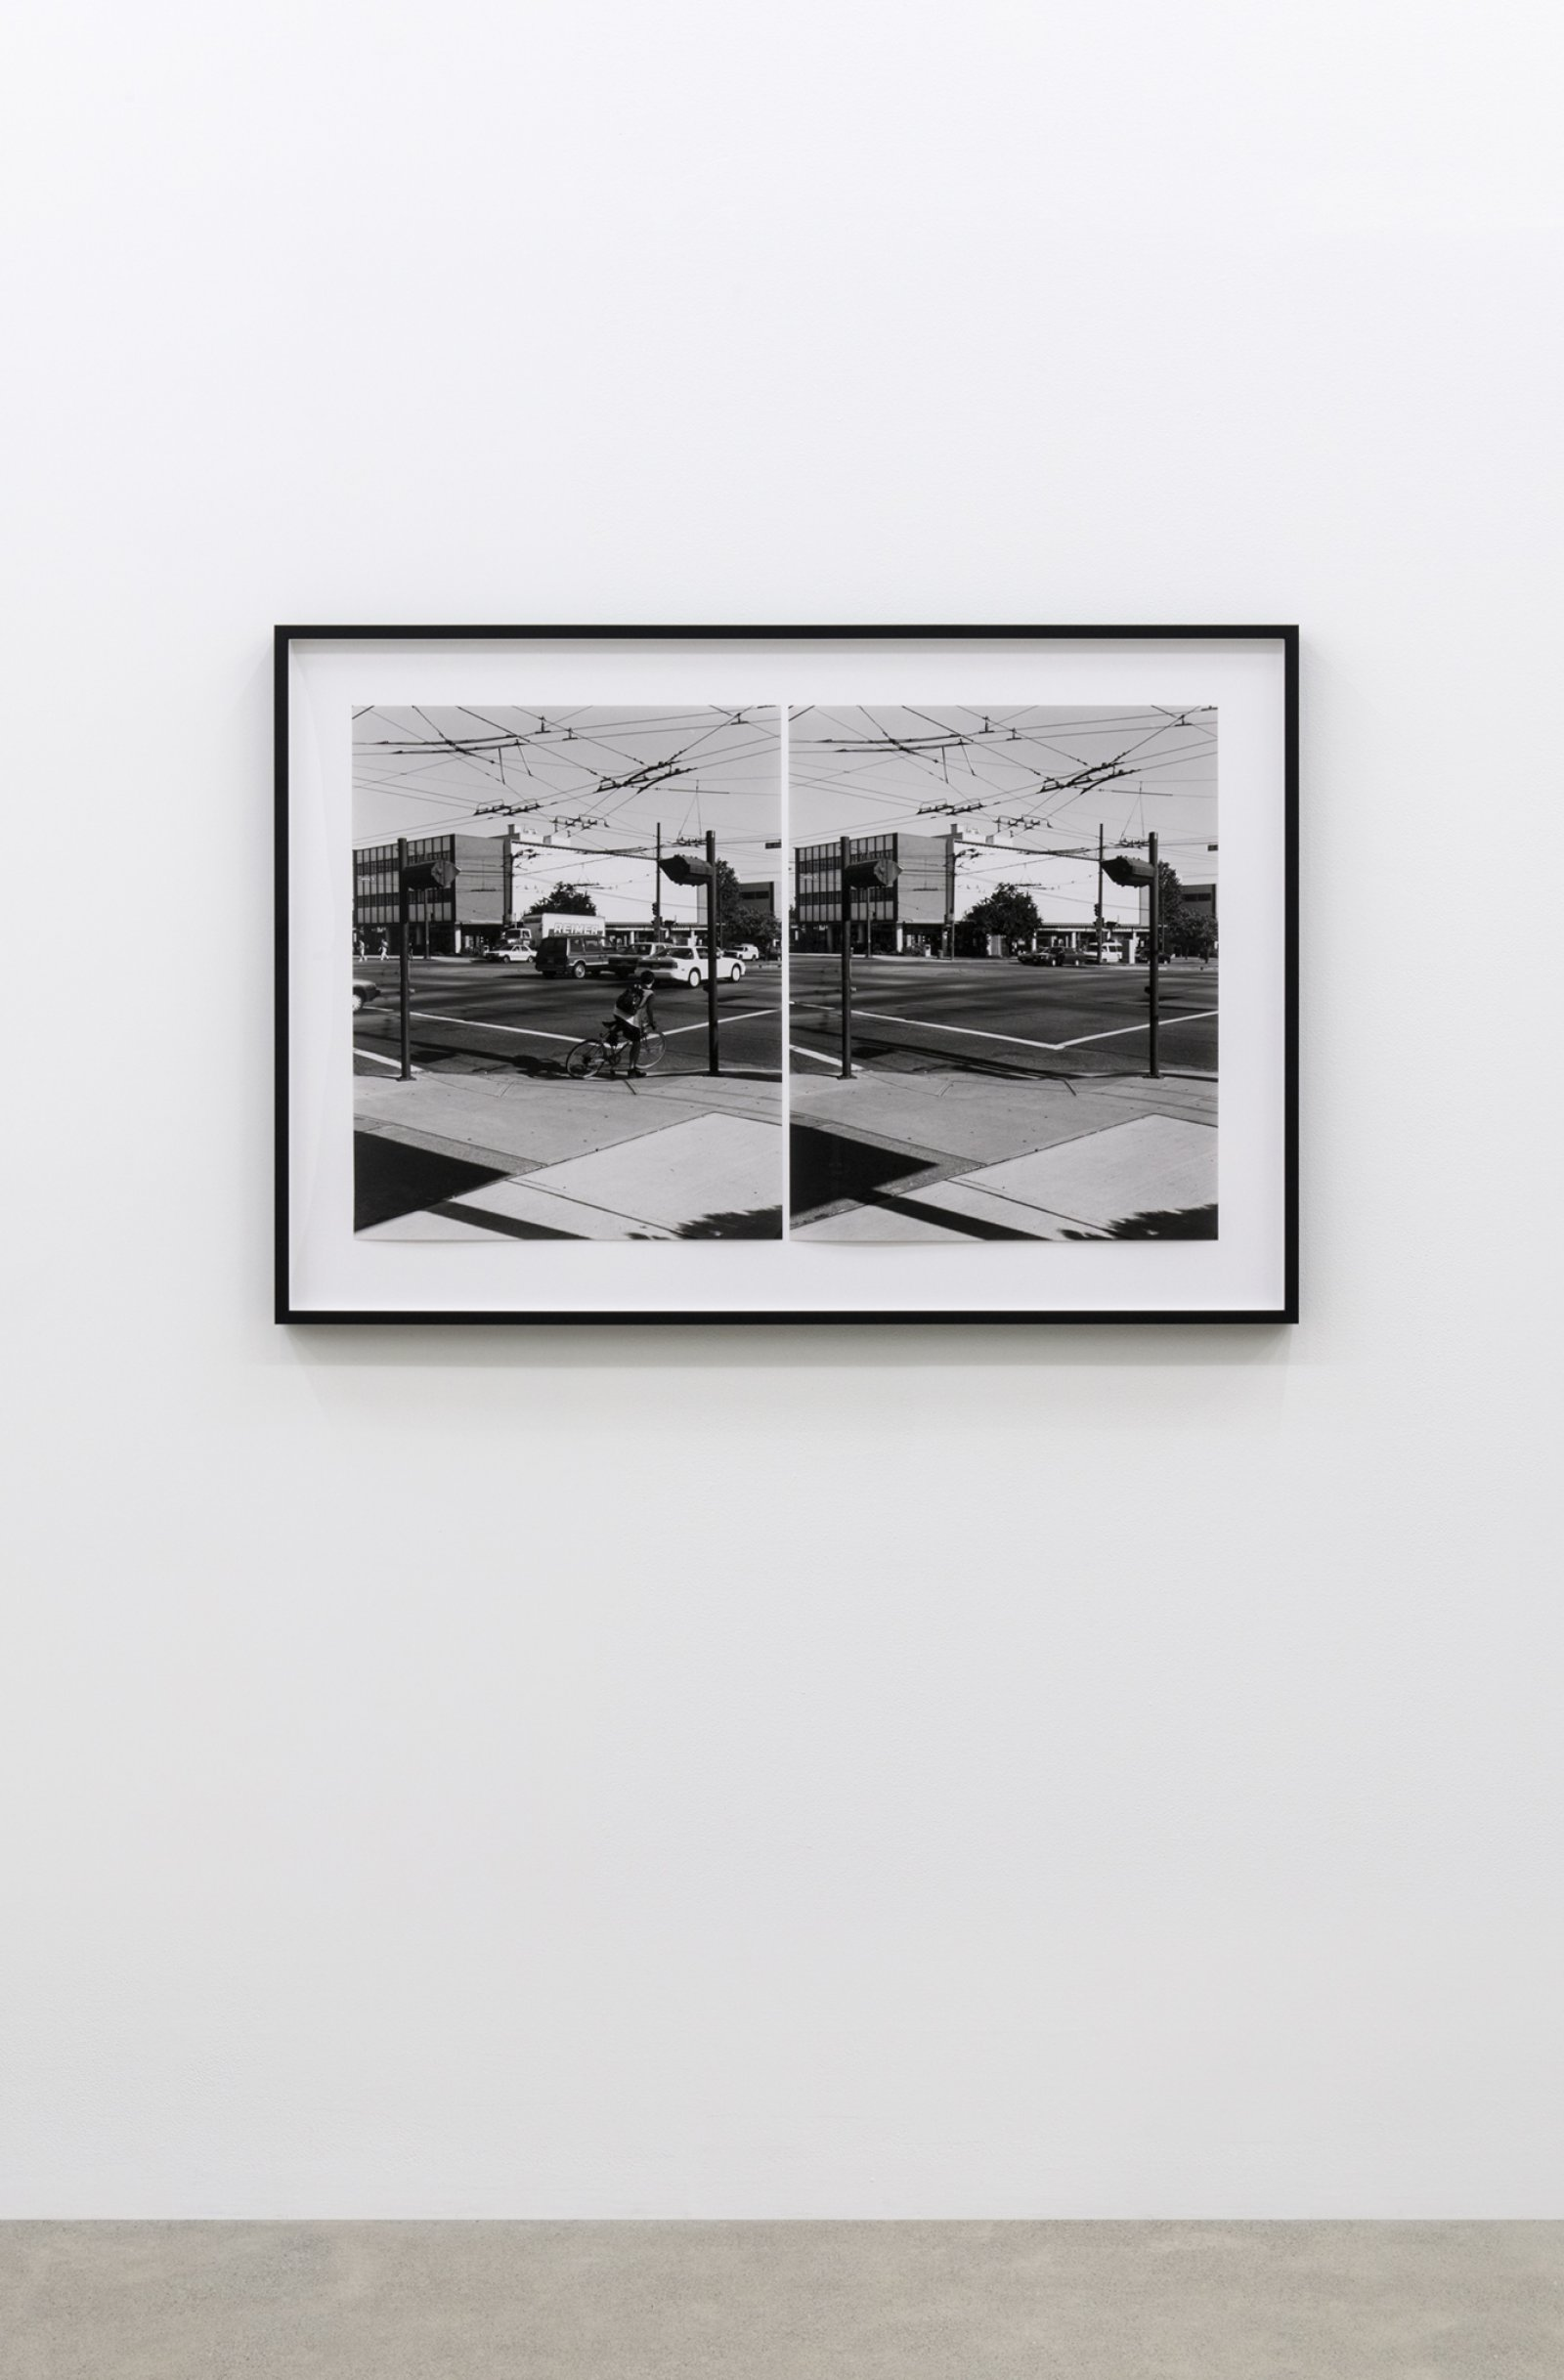 Ian Wallace, Intersection (Cambie and 41st Street), 1996, two black and white photographs, 23 x 19 in. (60 x 48 cm)